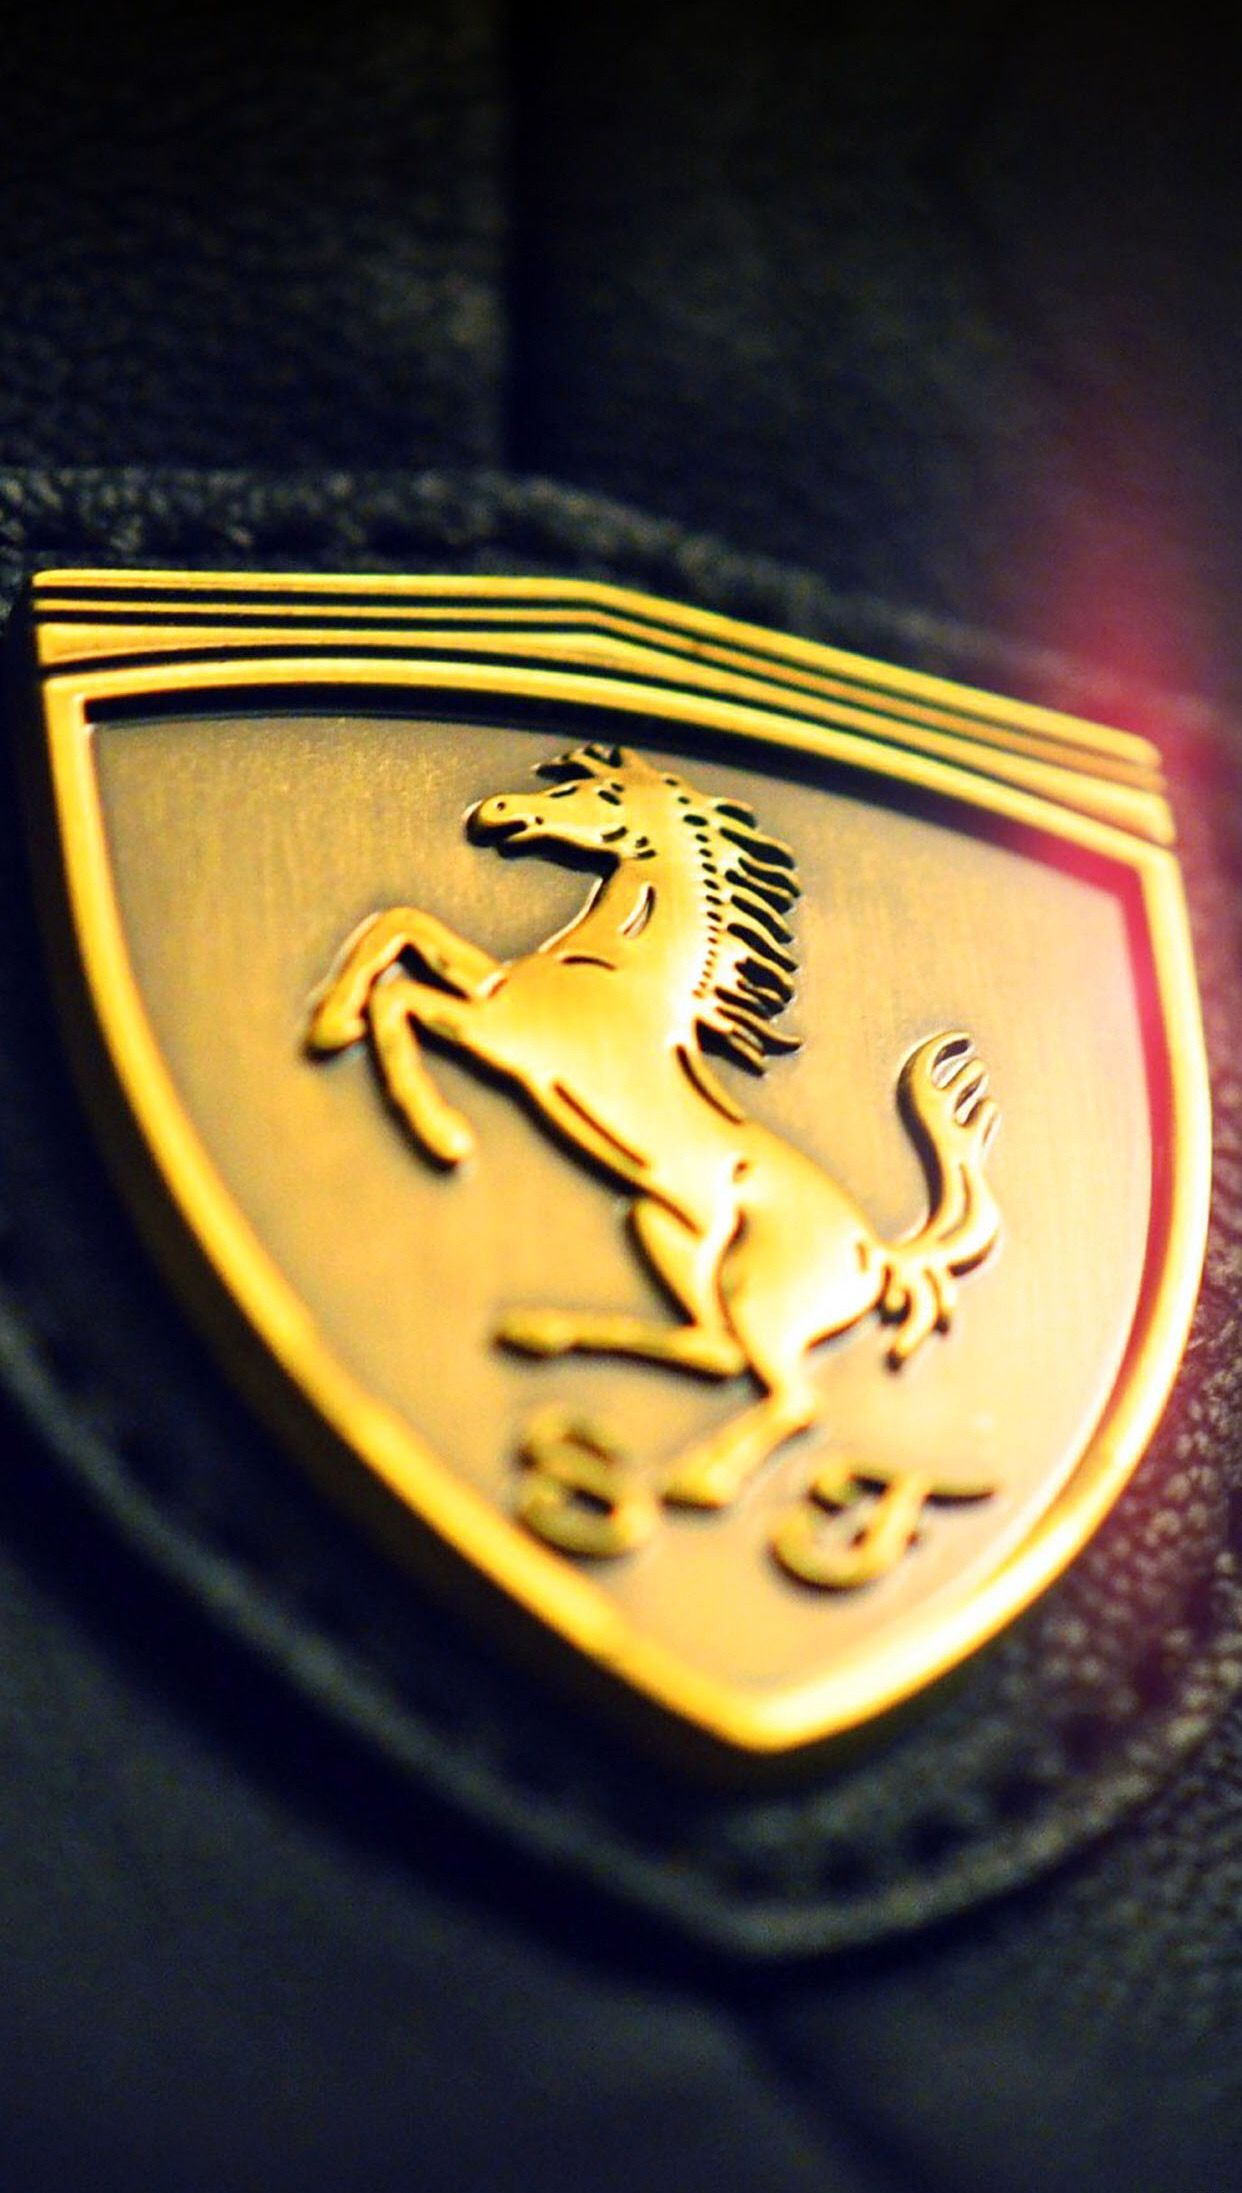 Gold Ferrari Logo With Images Ferrari Gold Wallpaper Hd